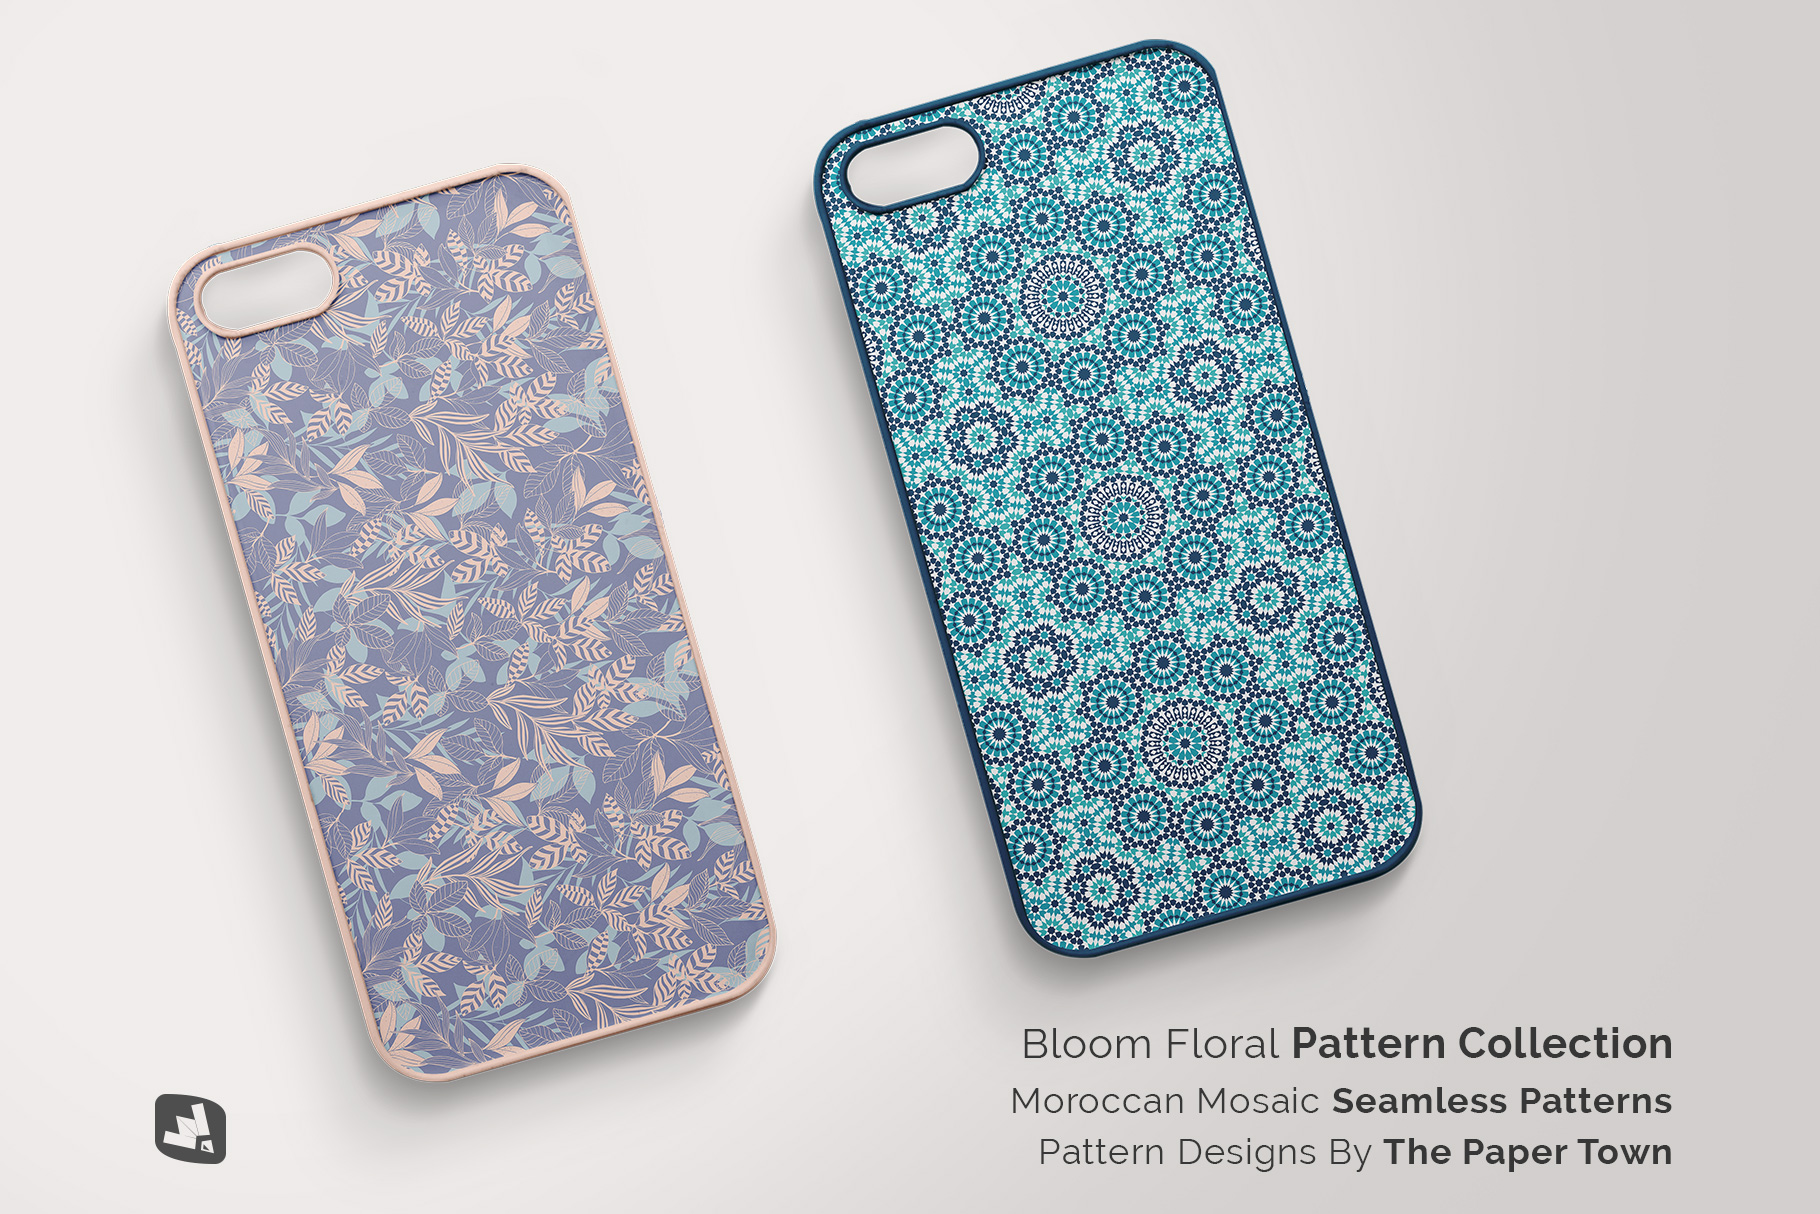 designer's credit of the top view phone case mockup